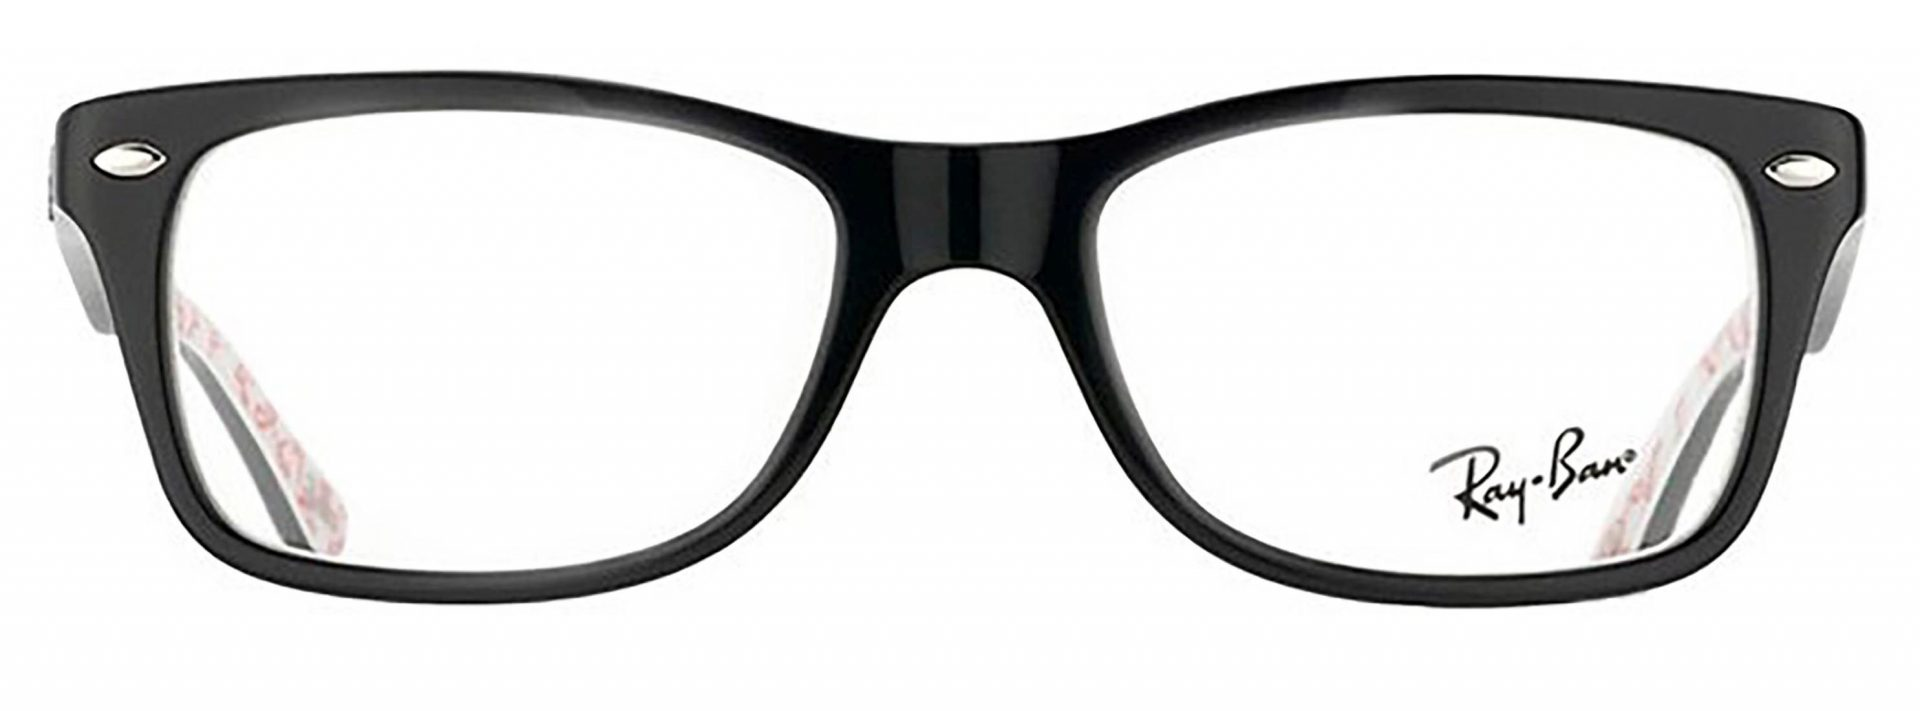 Ray-Ban spectacles 5228 5014 1 2970x1100